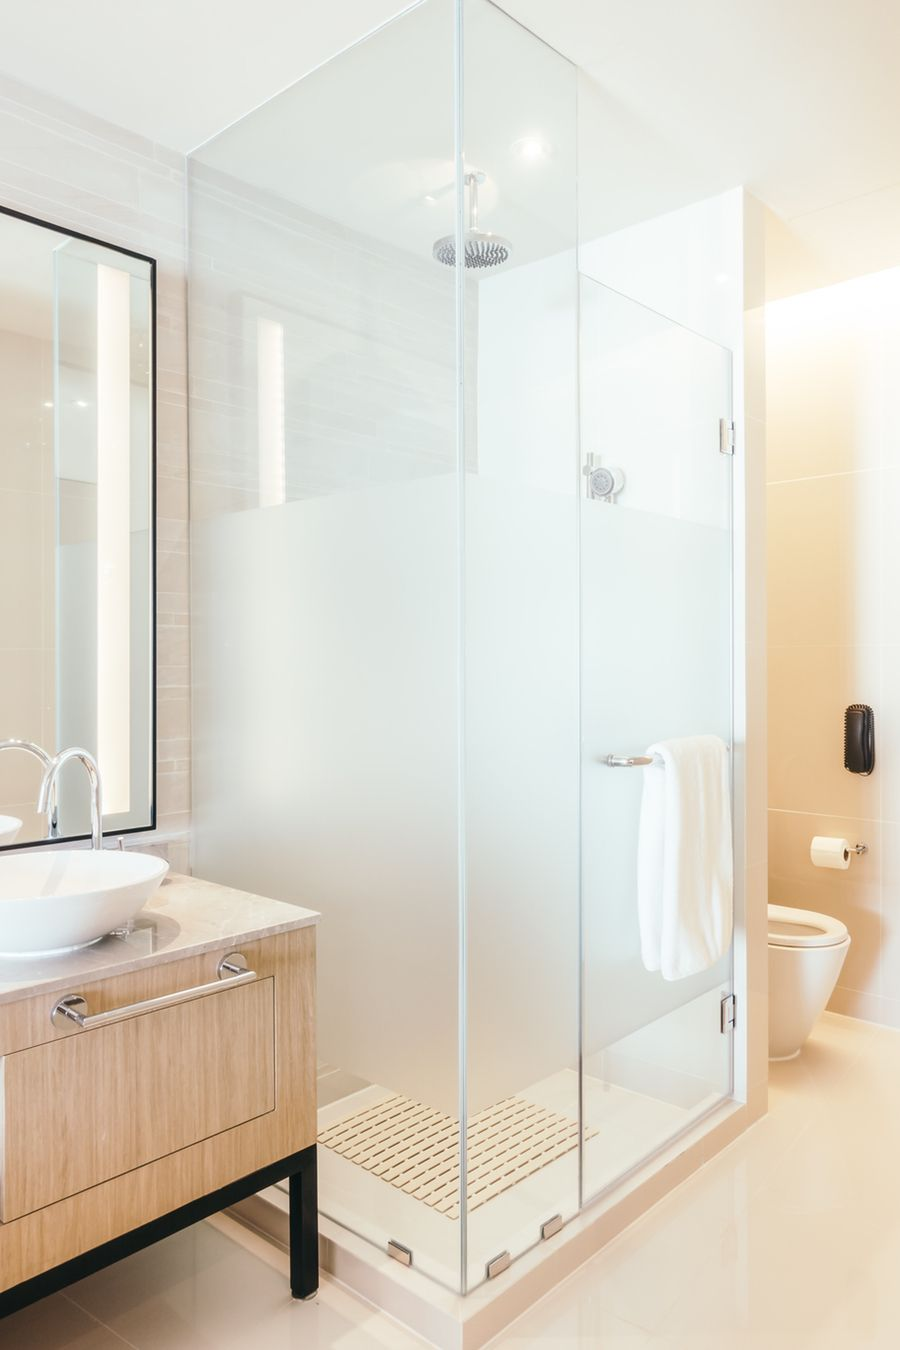 How To Choose Between A Tub And Shower For Your Bathroom With